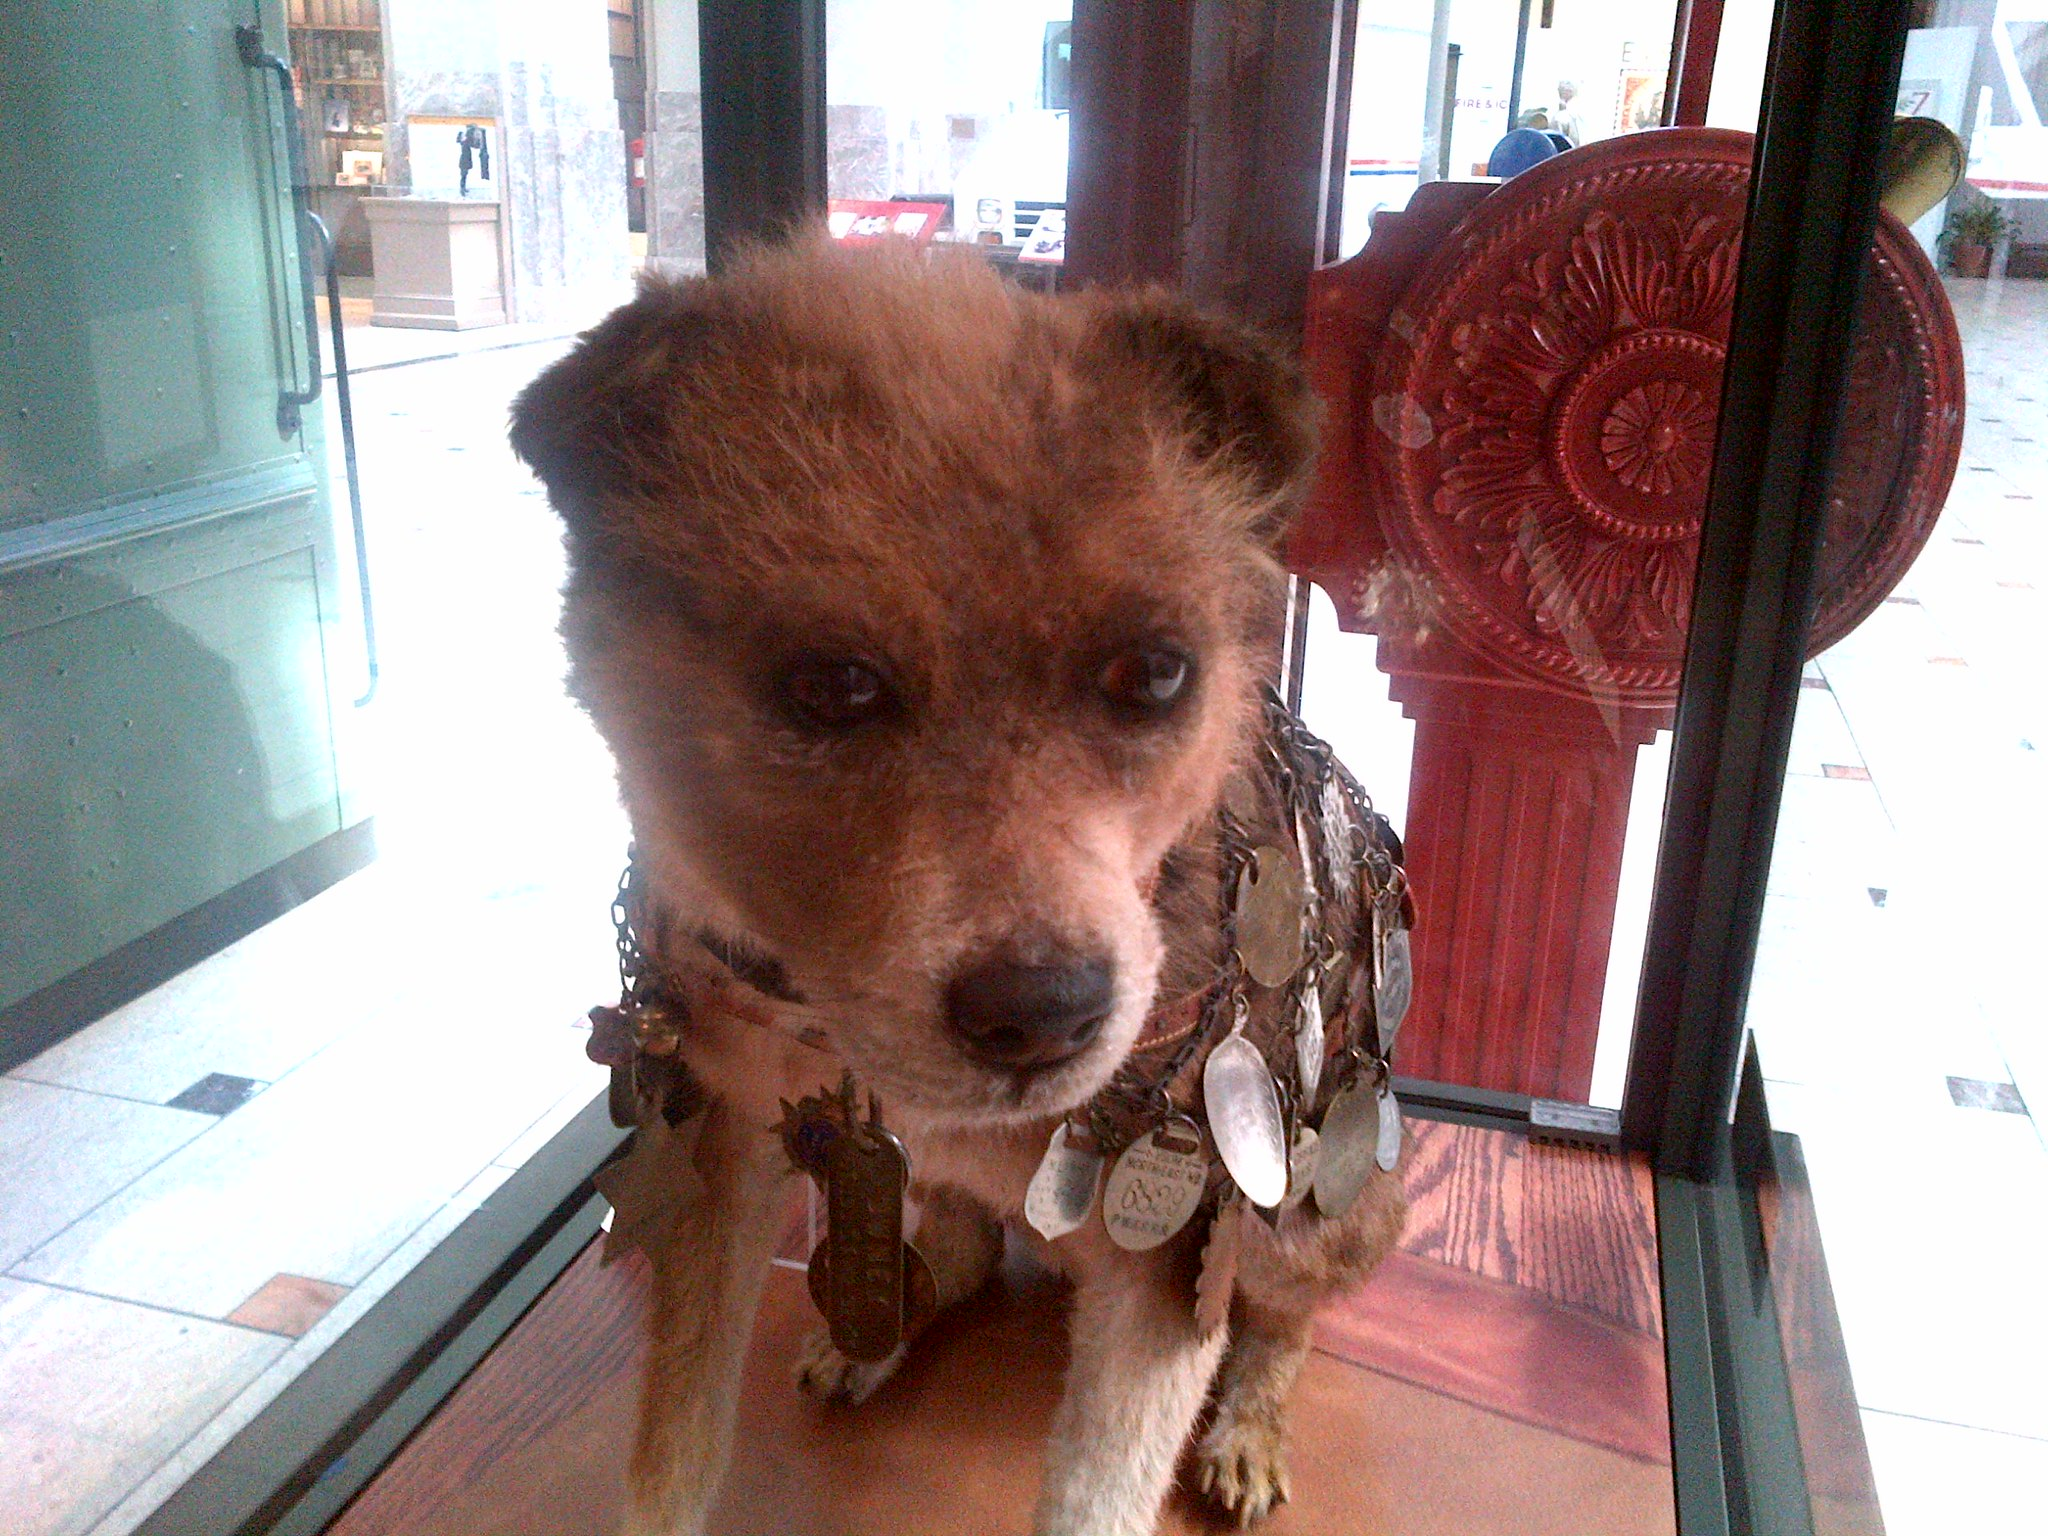 Owney (ca. 1887 – June 11, 1897), was a Border terrier adopted as the first unofficial postal mascot by the Albany, New York, post office about 1888. The Albany postal workers recommended the dog to their Railway Mail Service colleagues, and he became a nationwide mascot for 9 years (1888–97). He traveled throughout the 48 contiguous United States and voyaged around the world traveling over 140,000 miles in his lifetime as a mascot of the Railway Post Office and the United States Post Office Deparment. Owney was honored with his own U.S. commemorative stamp, released on July 27, 2011 (Scott #4547). The dog's preserved body is on display at the Smithsonian National Postal Museum (NPM) in Washington, D.C. Photo taken on March 5, 2014.